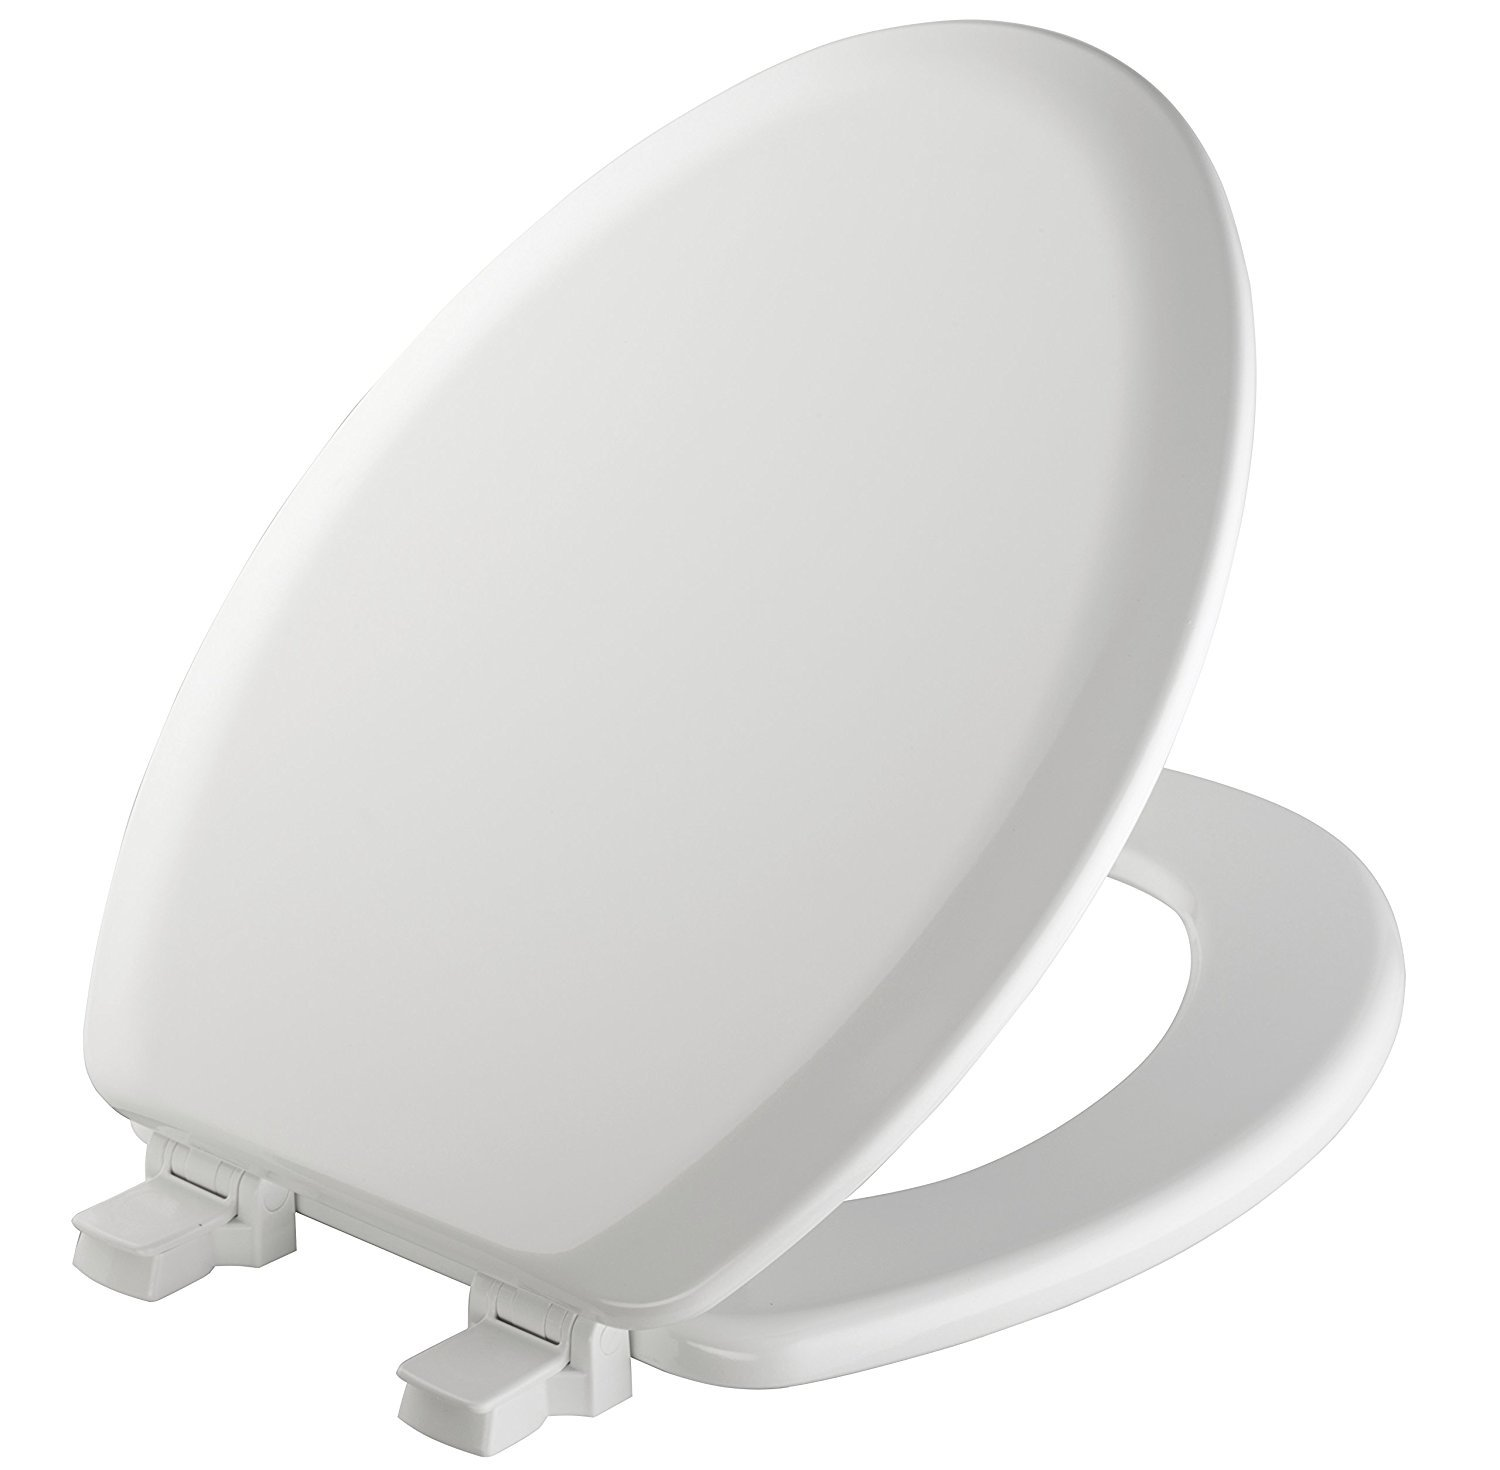 MAYFAIR  Toilet Seat will Never Loosen and Easily Remove, ELONGATED, Durable Enameled Wood, Biscuit/Linen, 141EC 346